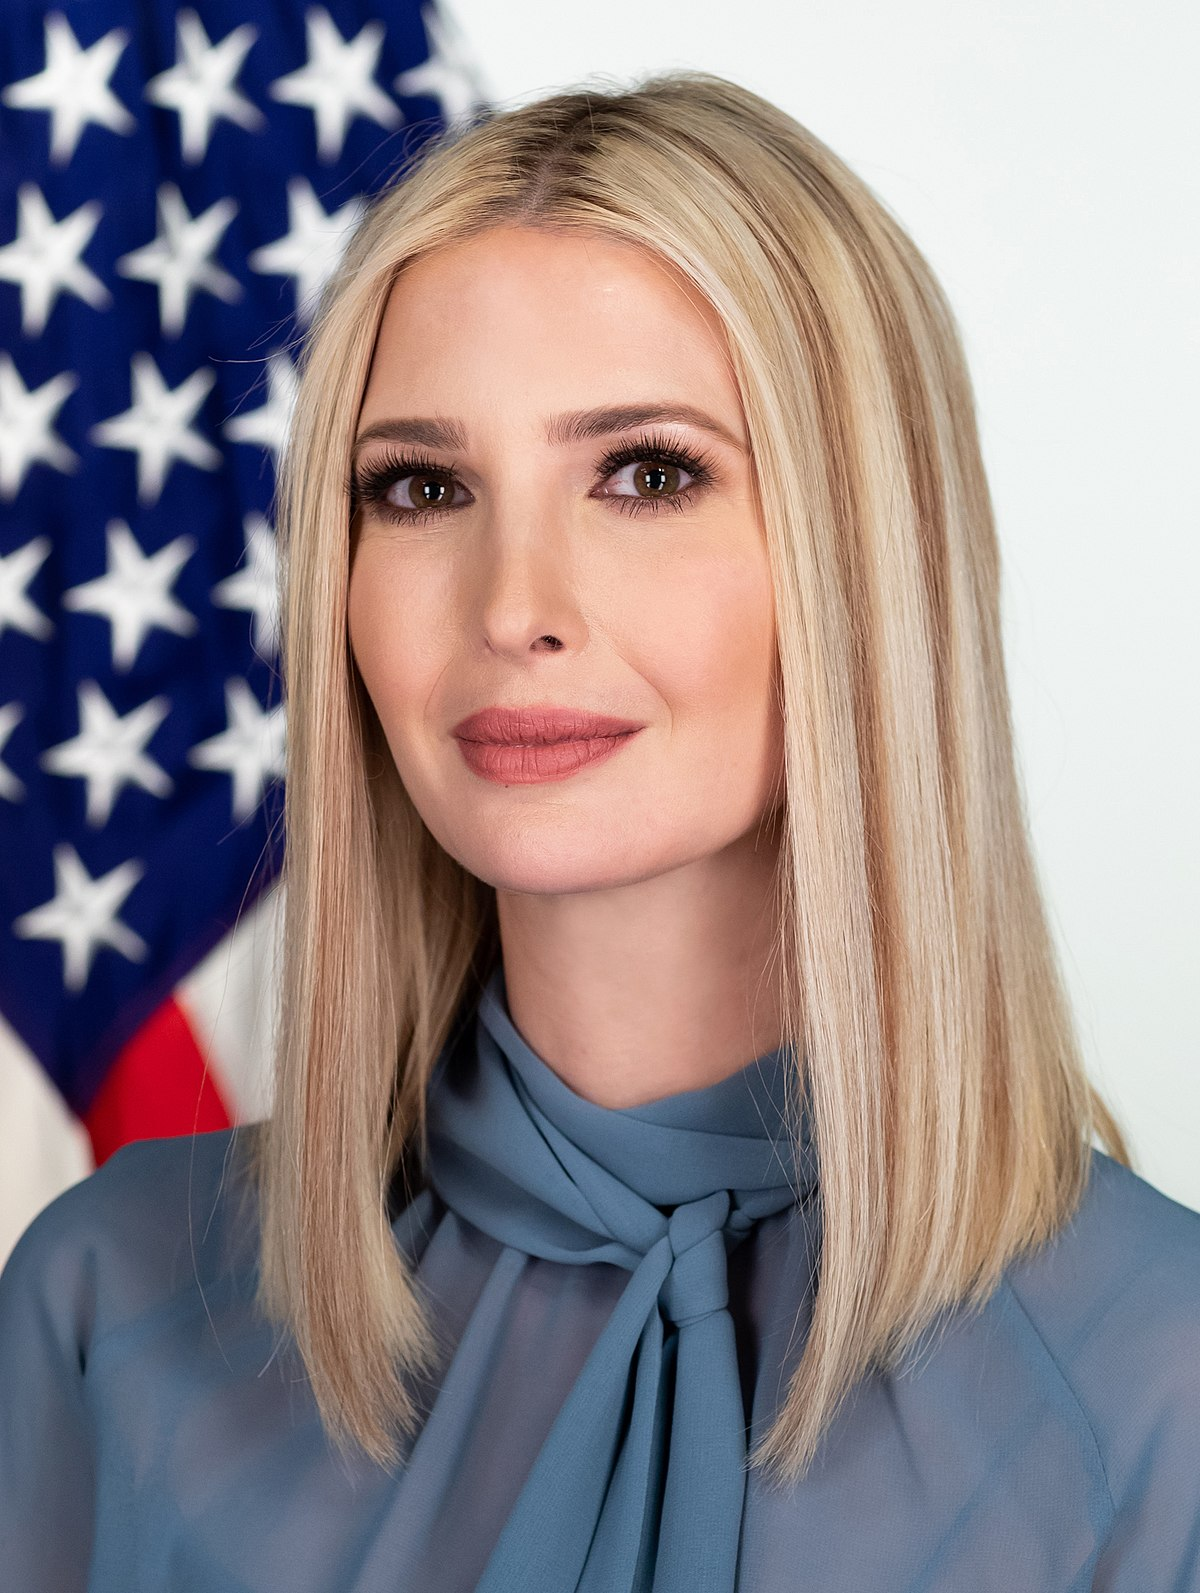 Ivanka Trump's physical appearance